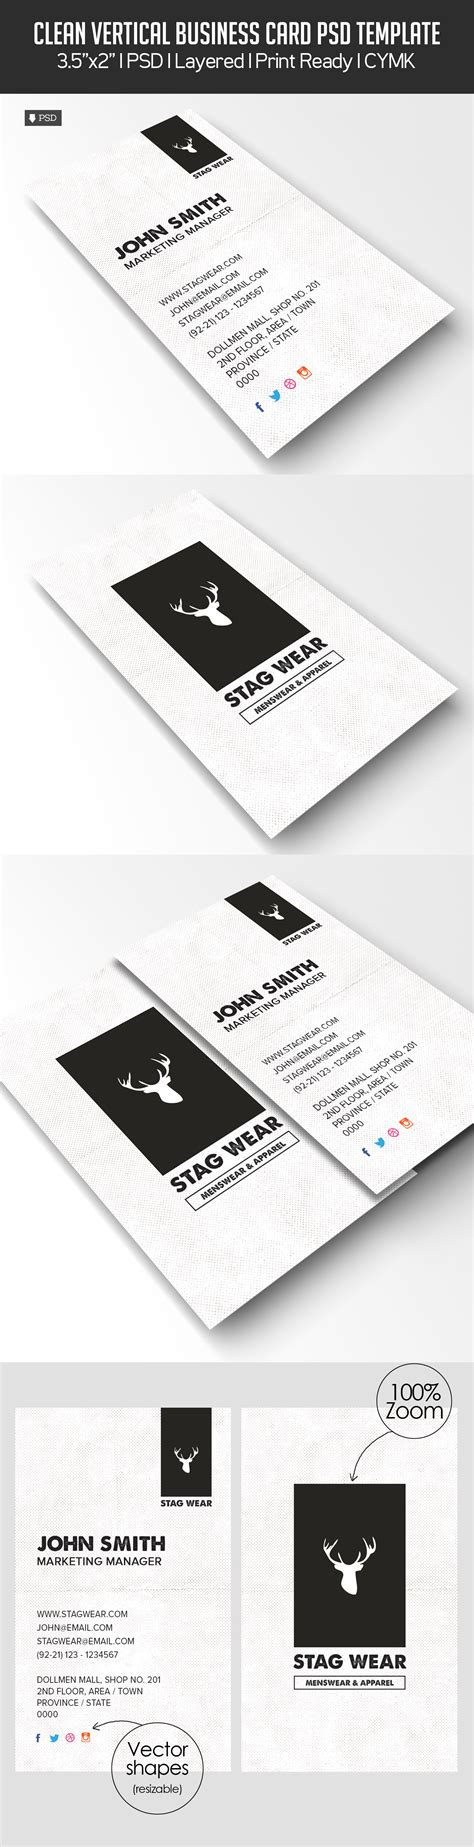 freebie vertical business card psd template freebies